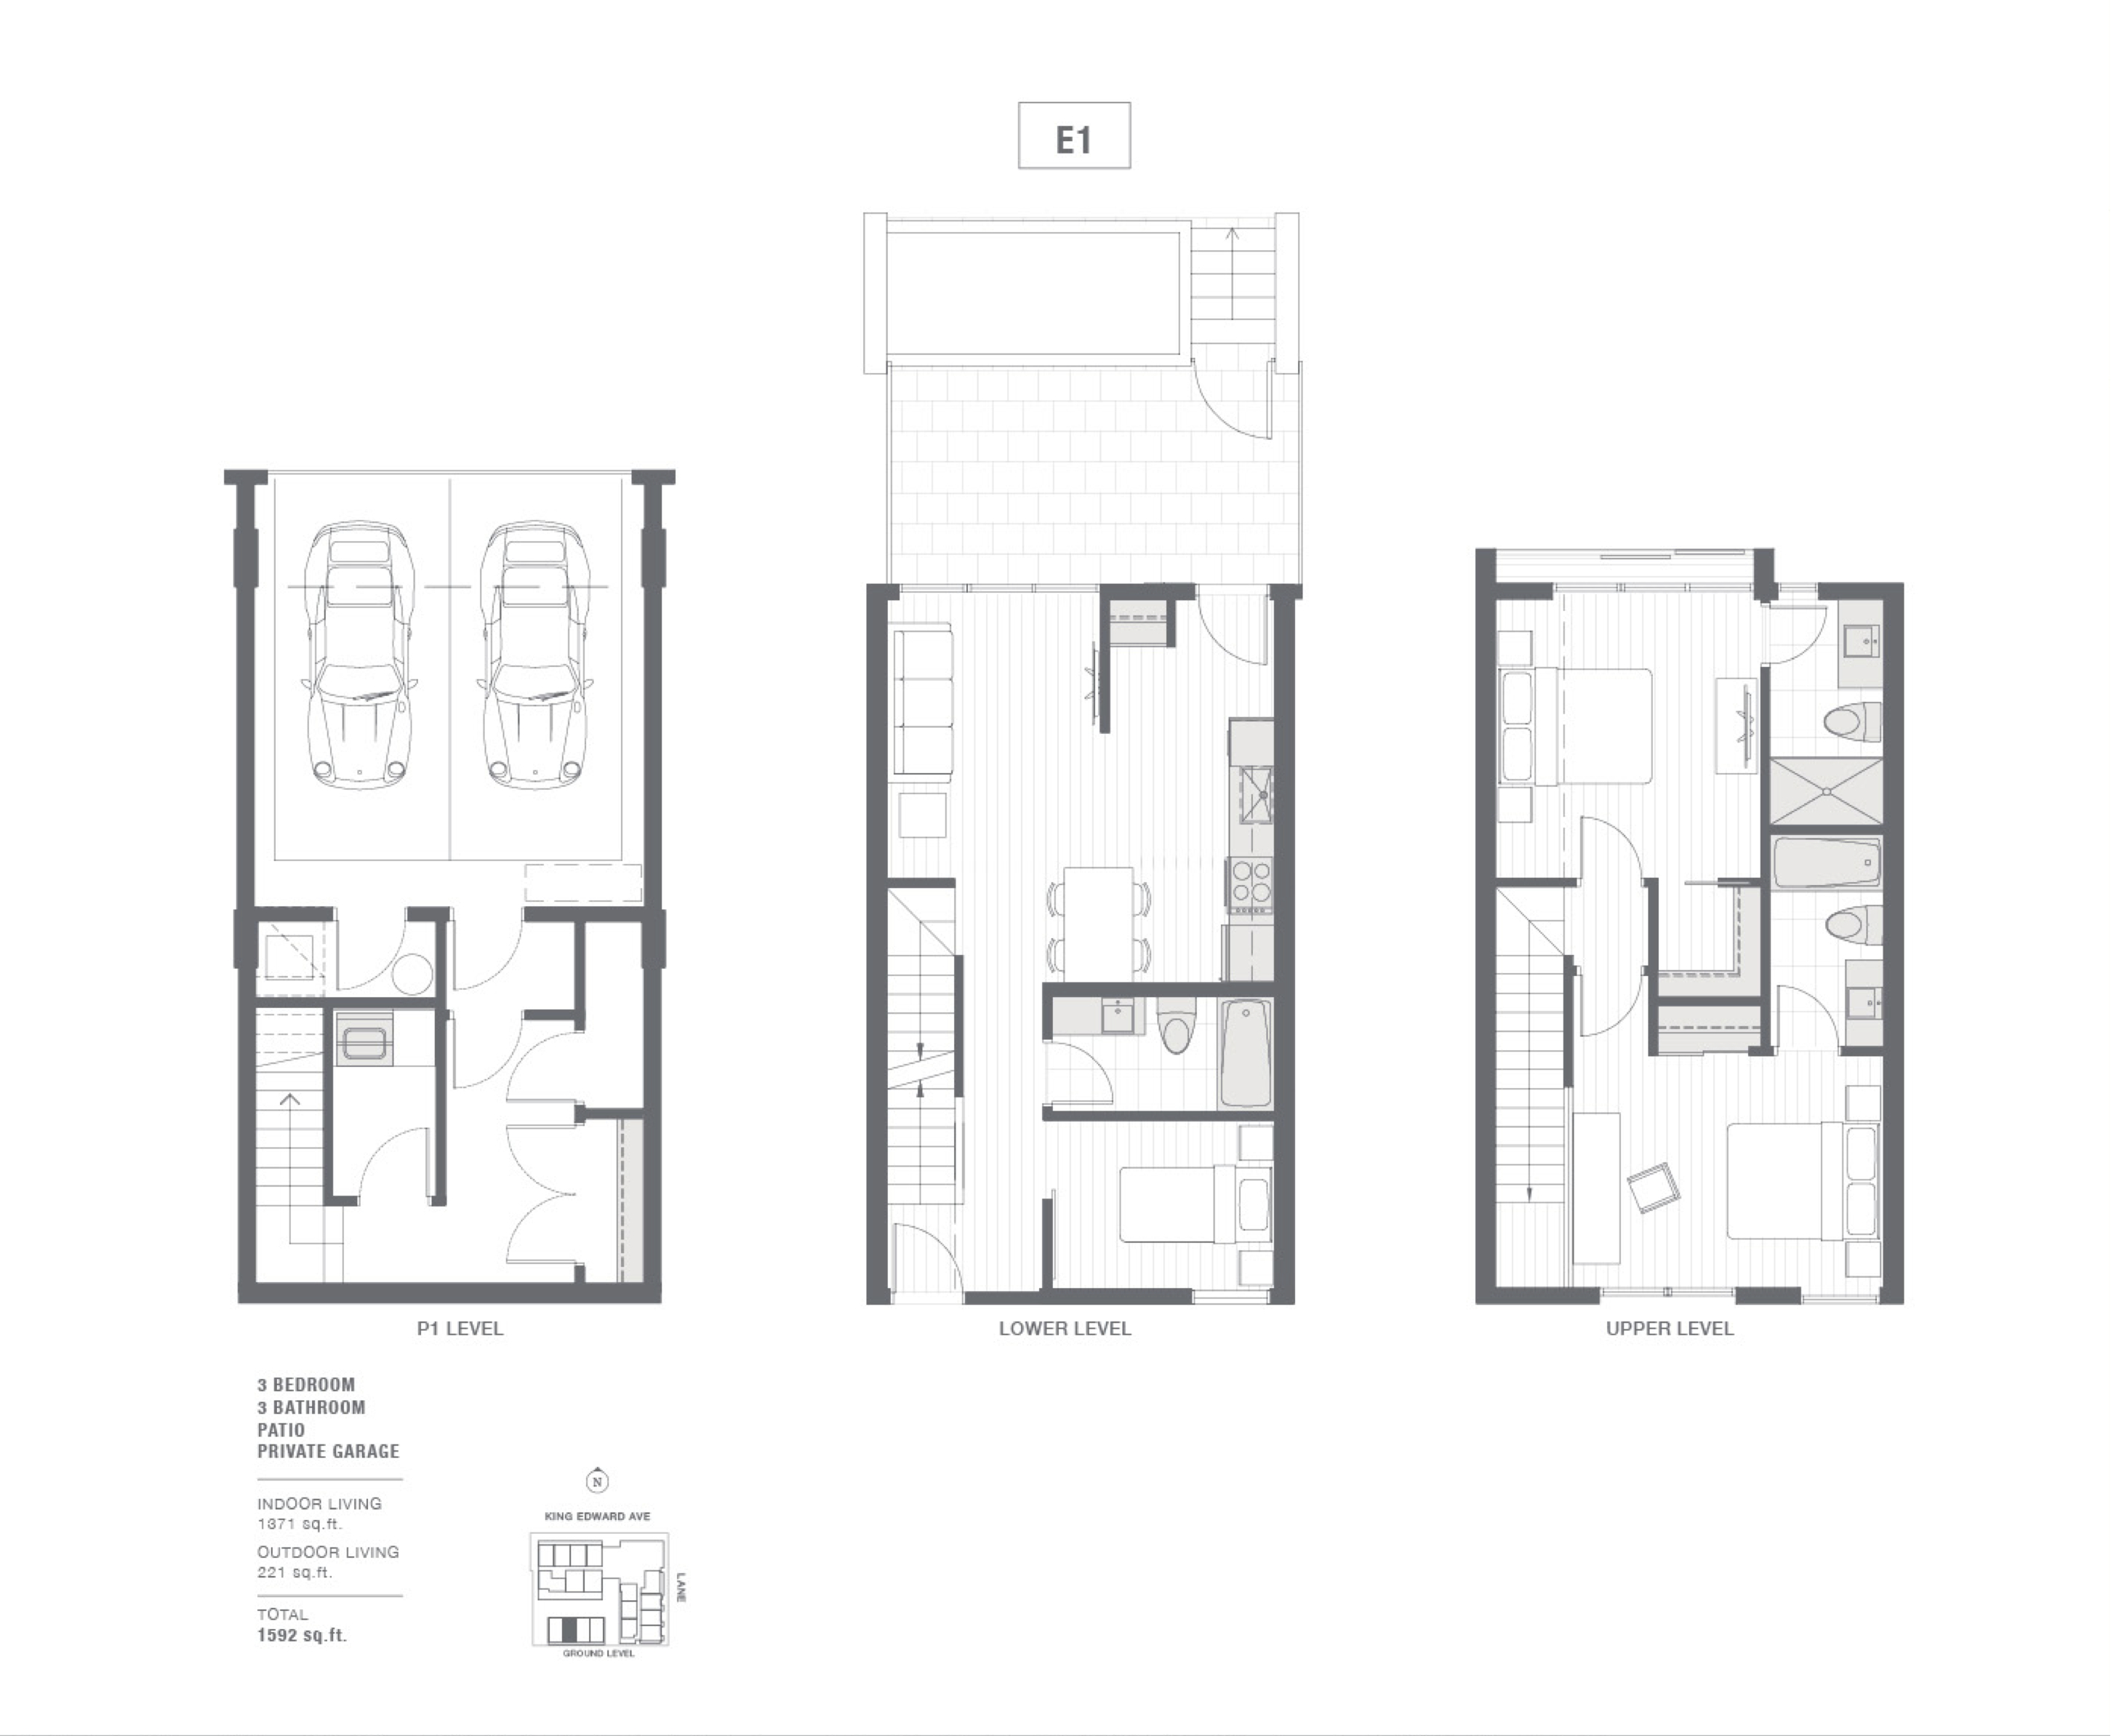 Cambie + King Edward townhouse floorplan.